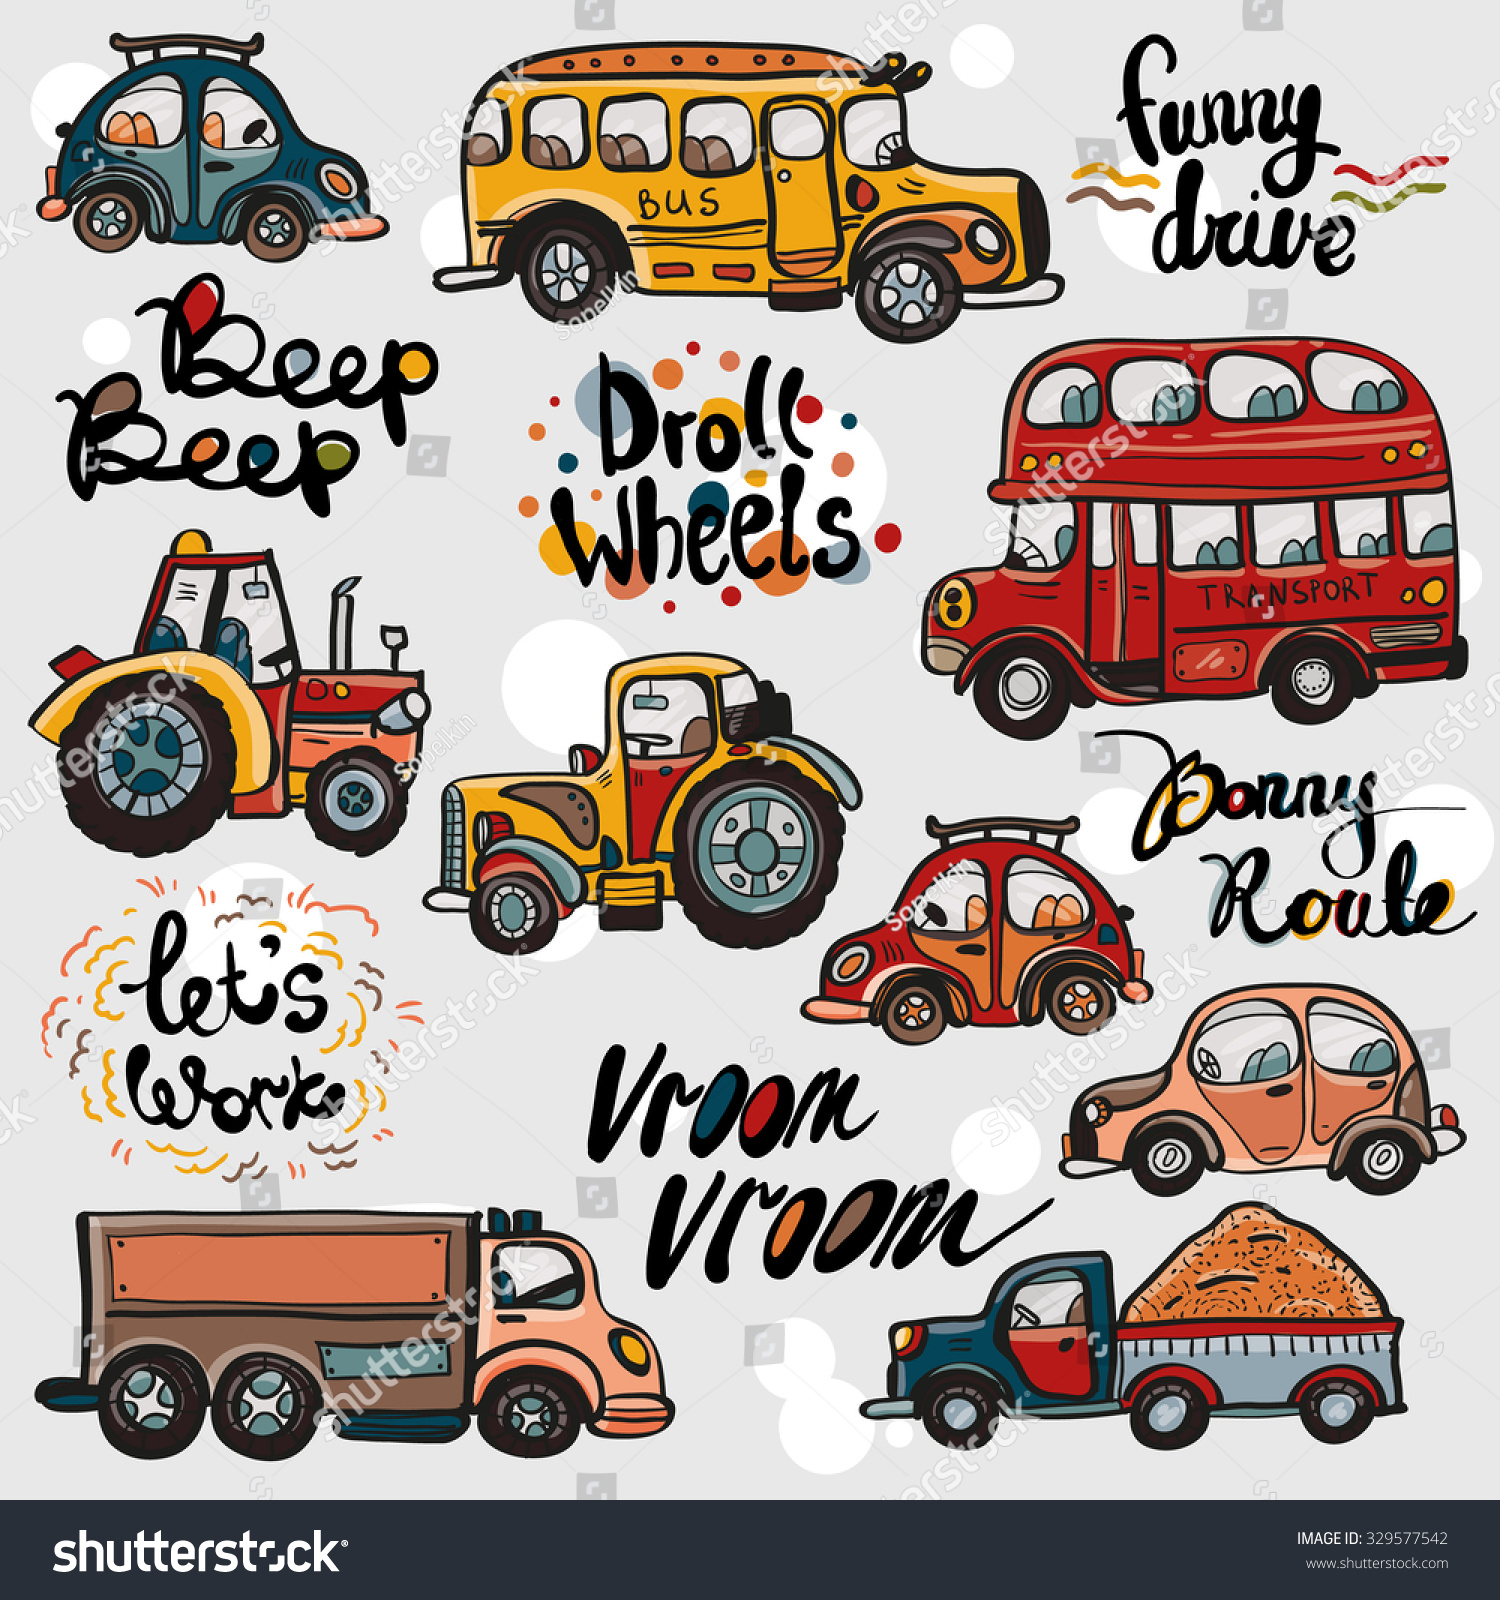 Funny Cute Hand Drawn Kids Toy Transport And Slogans. Baby